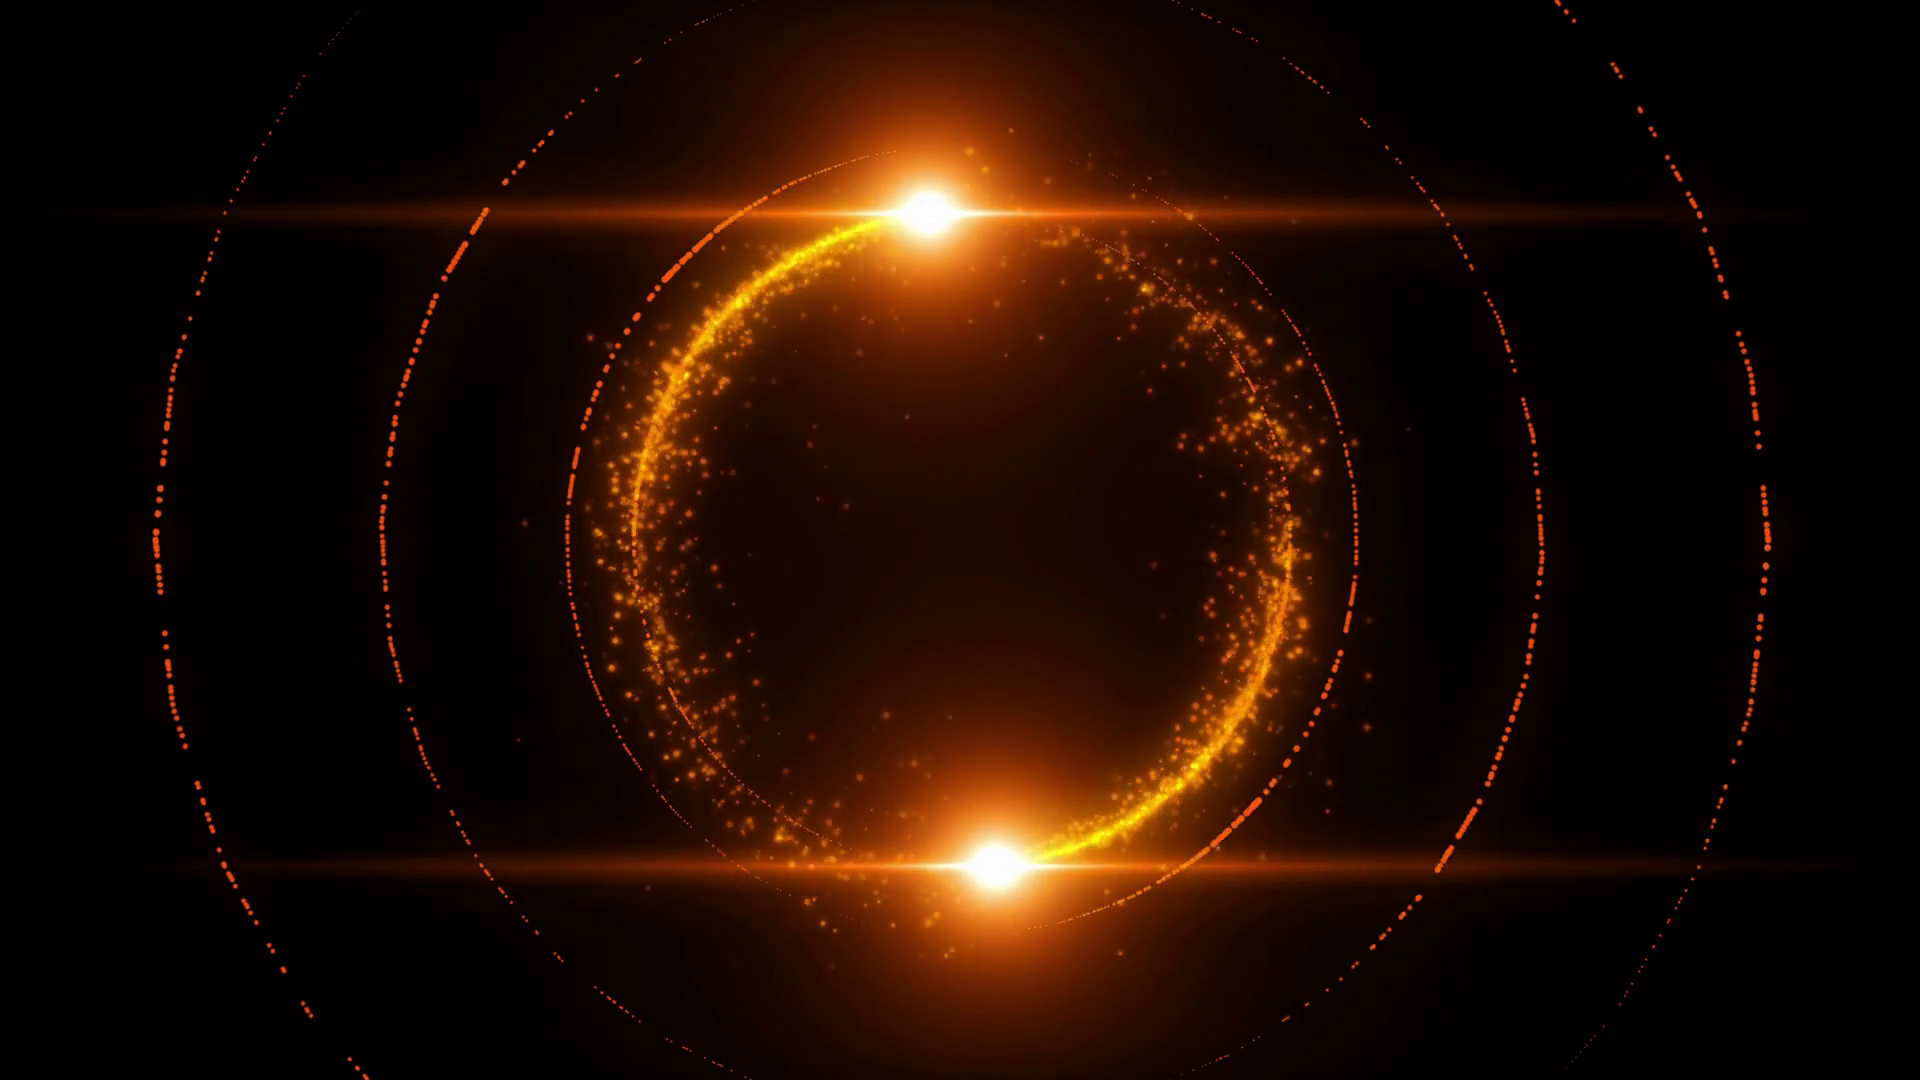 Lens Flares Spinning and Forming Particles Ring Orange Gold.